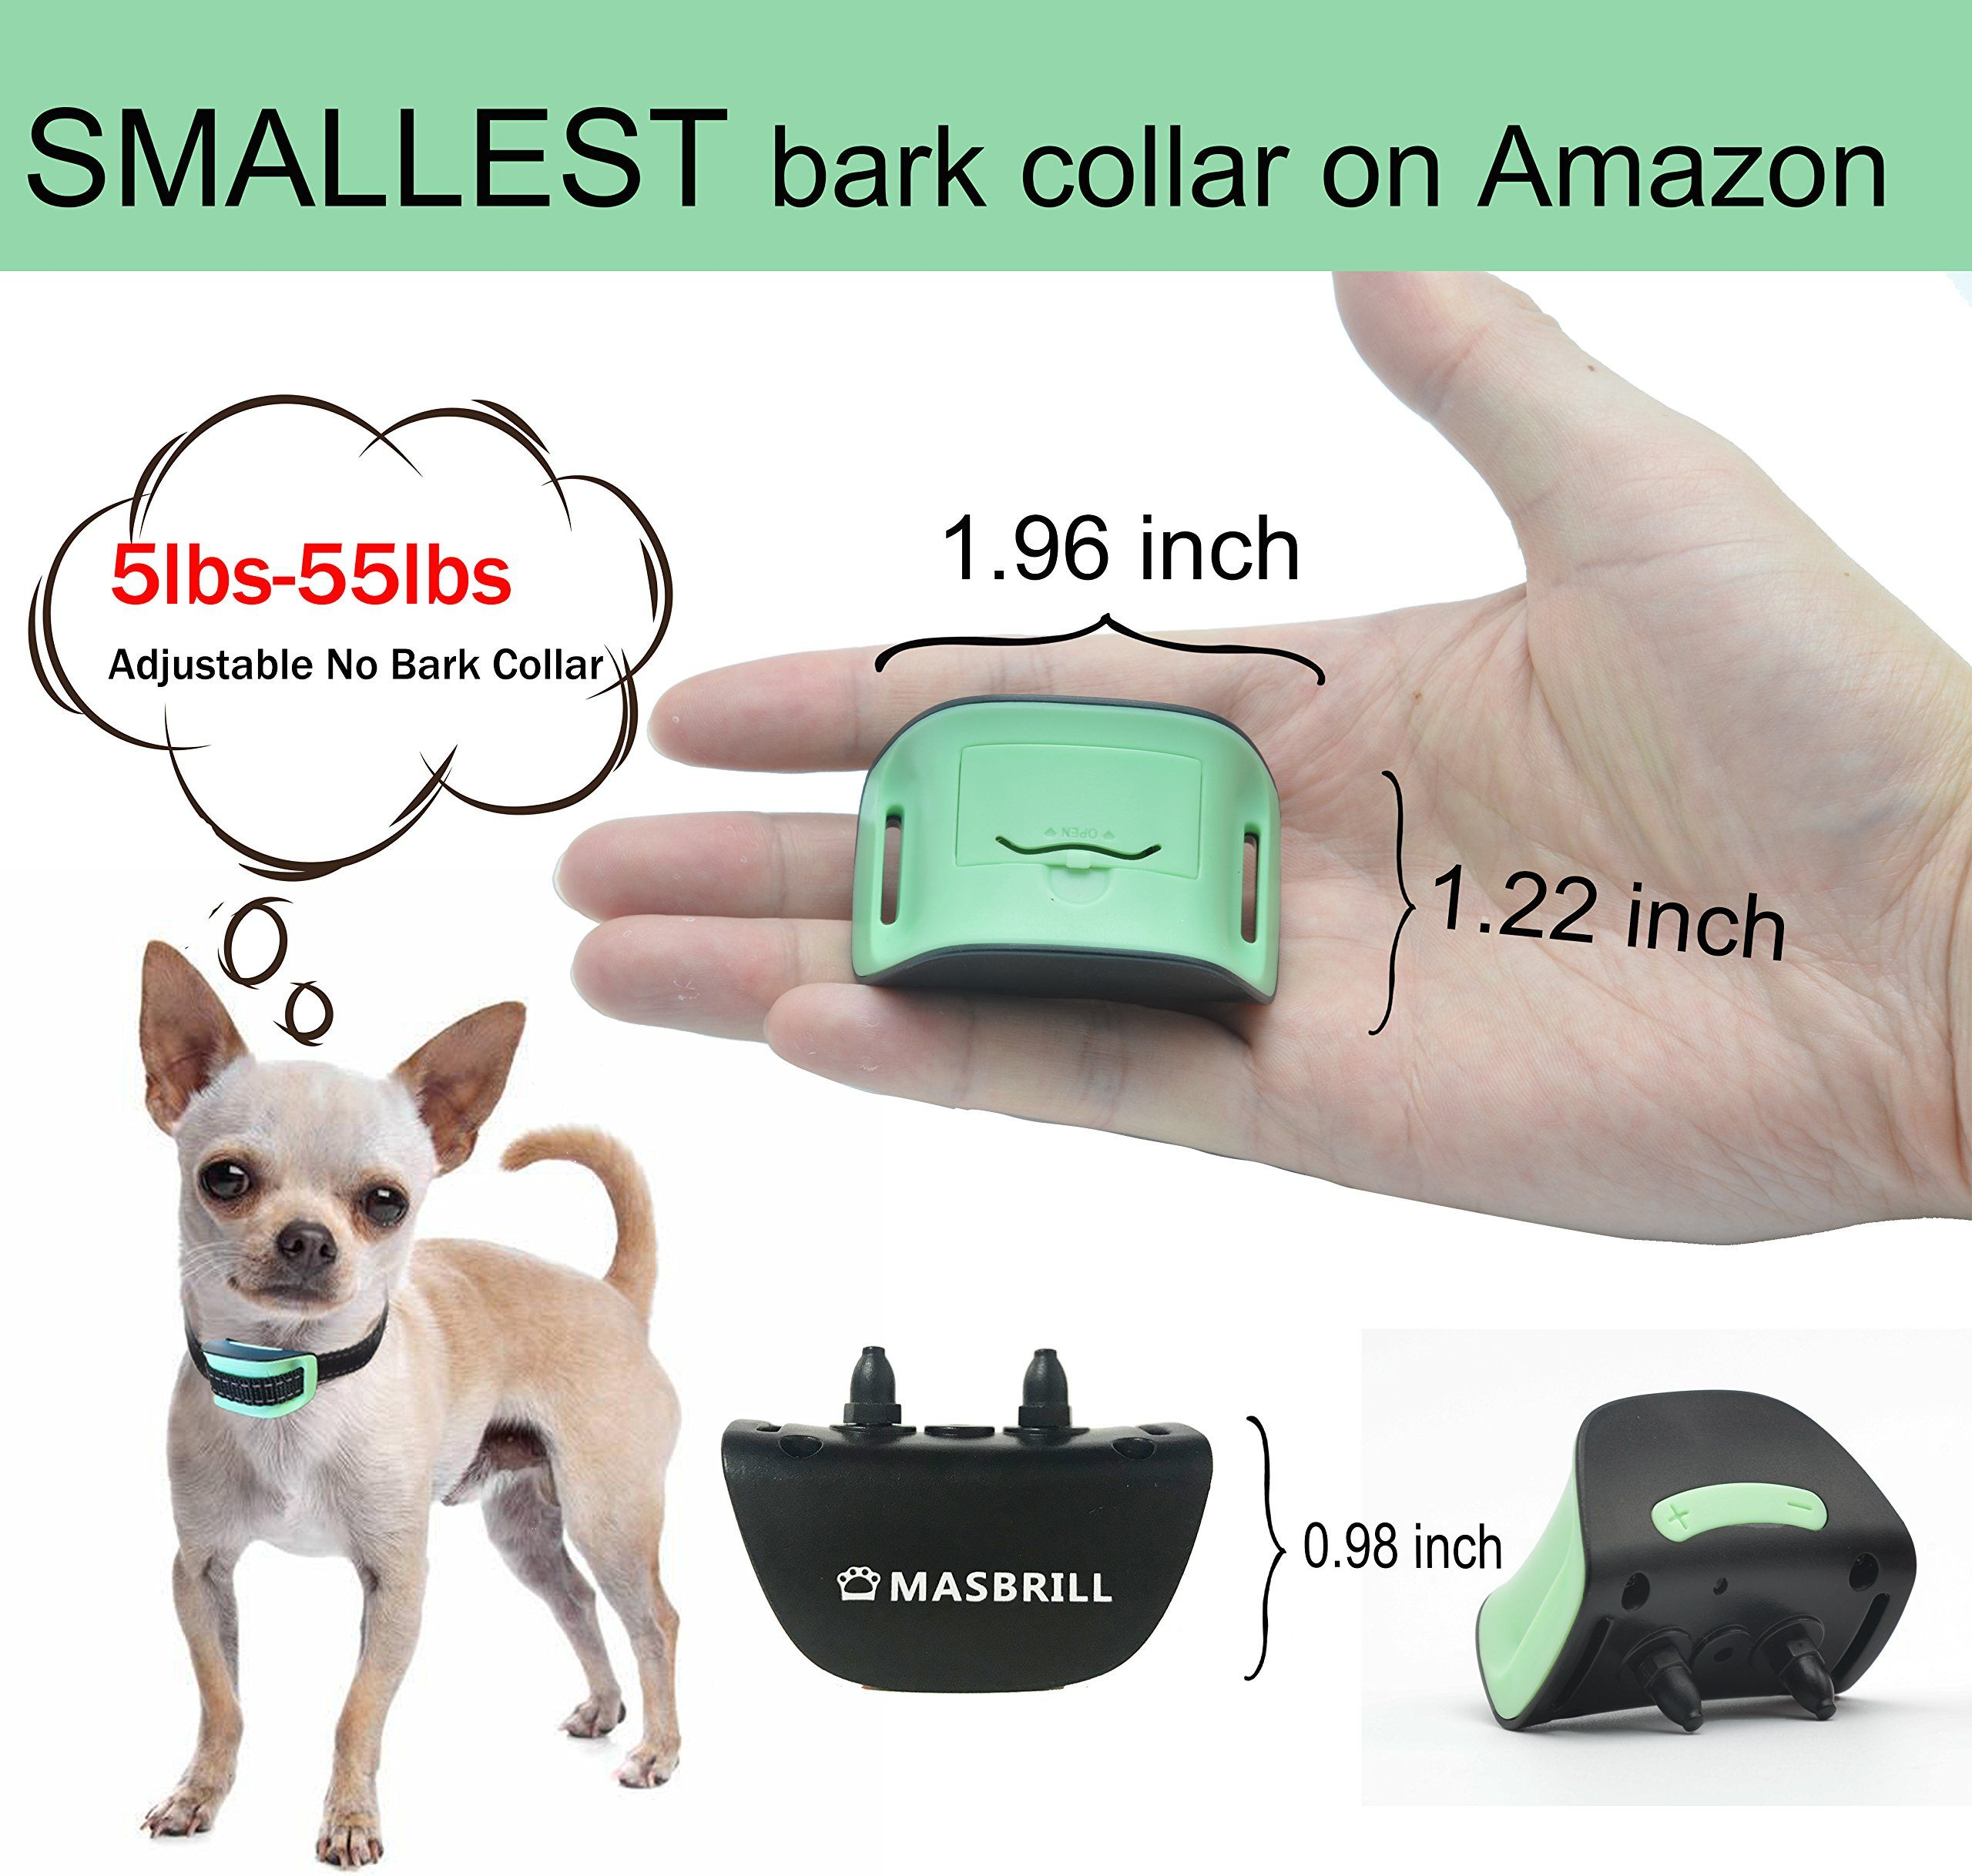 Masbrill Small Dog Bark Collar No Shock For Dogs Extra Small